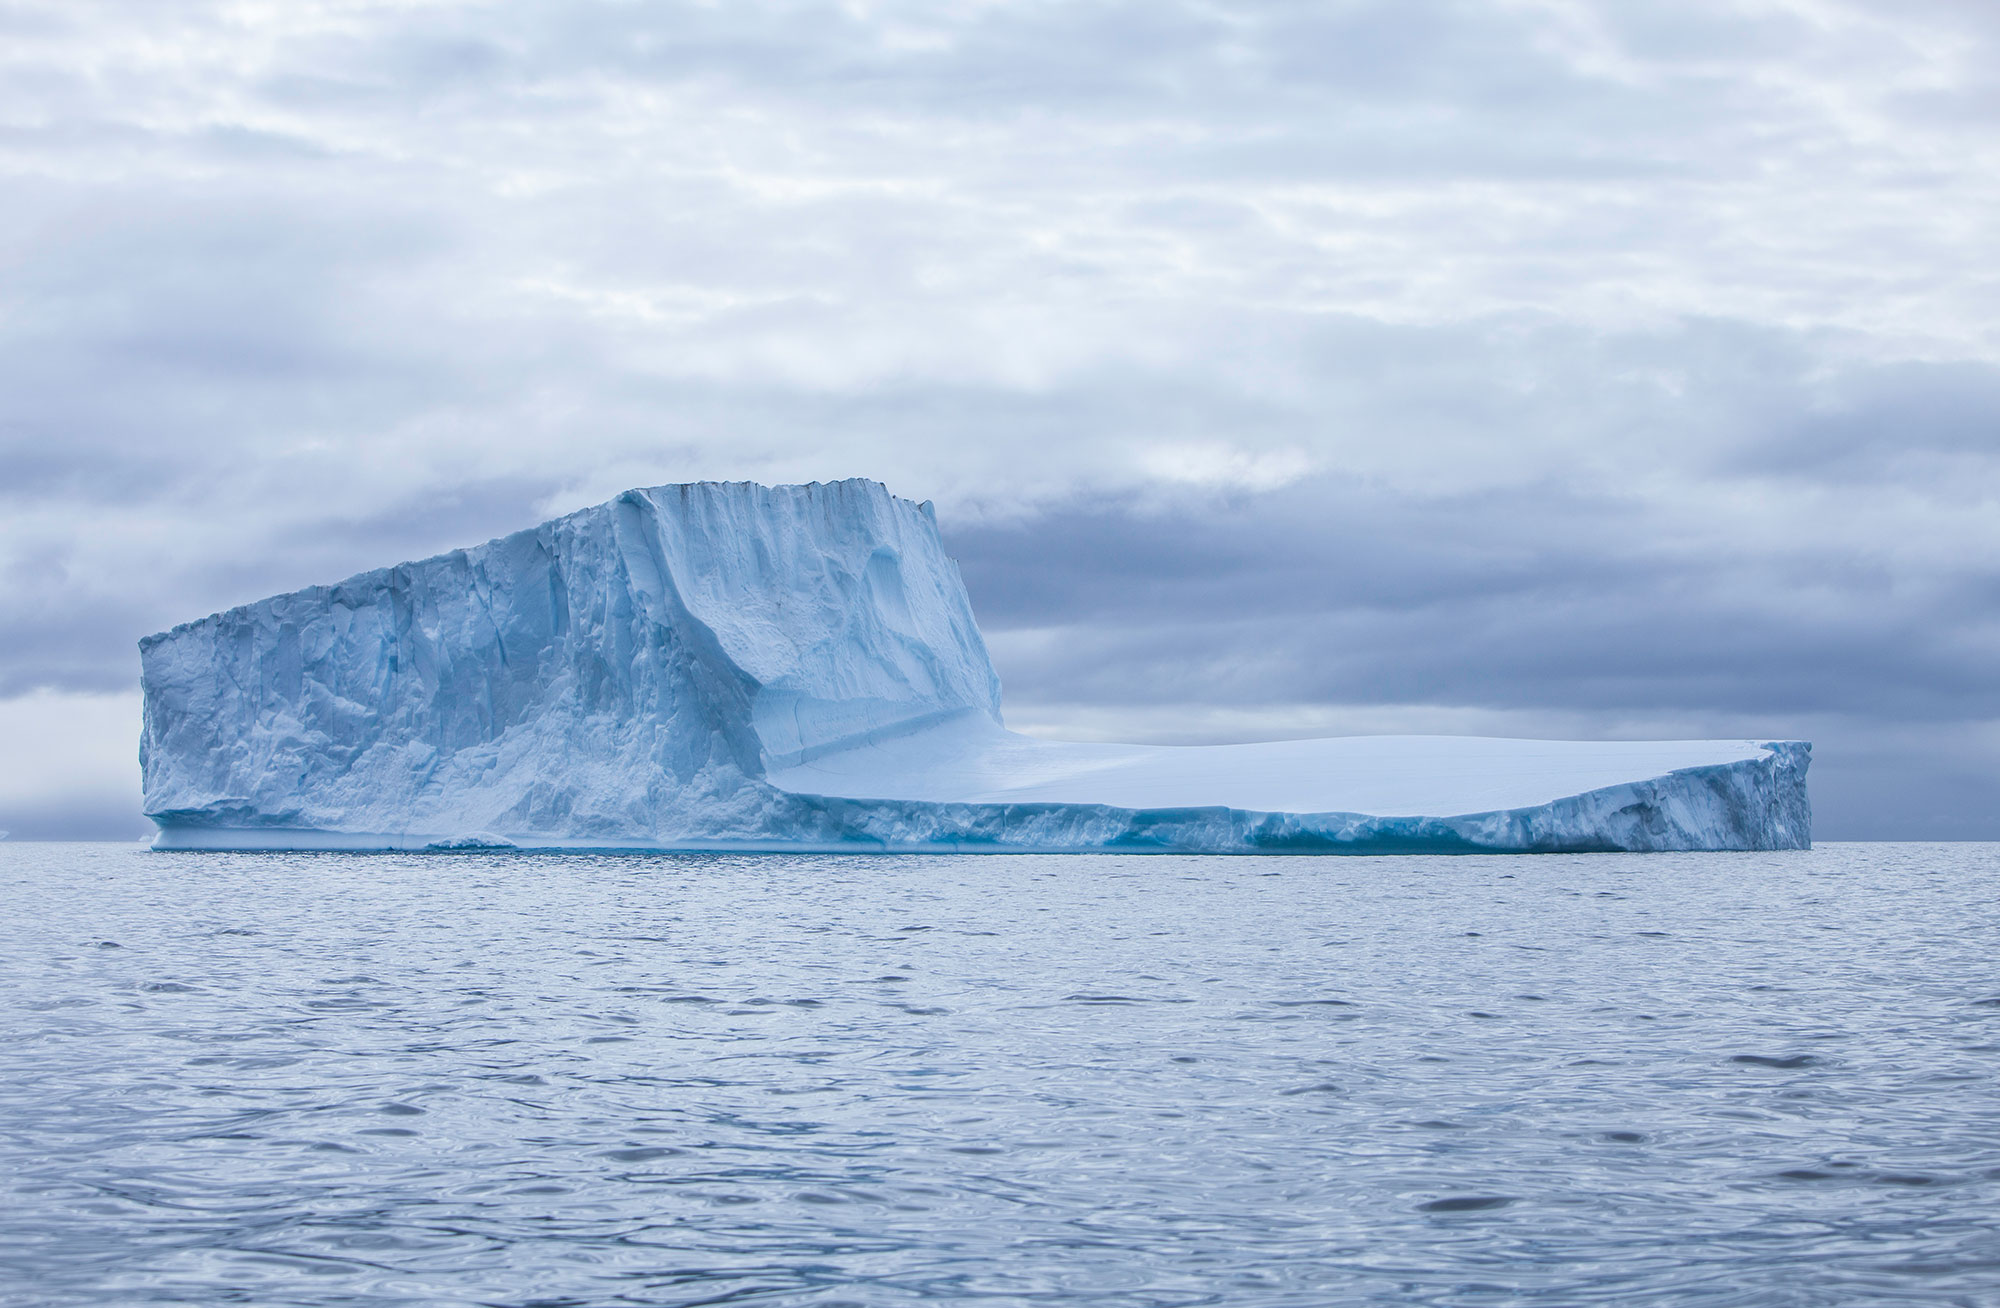 Do you remember the science about the floating Icebergs?